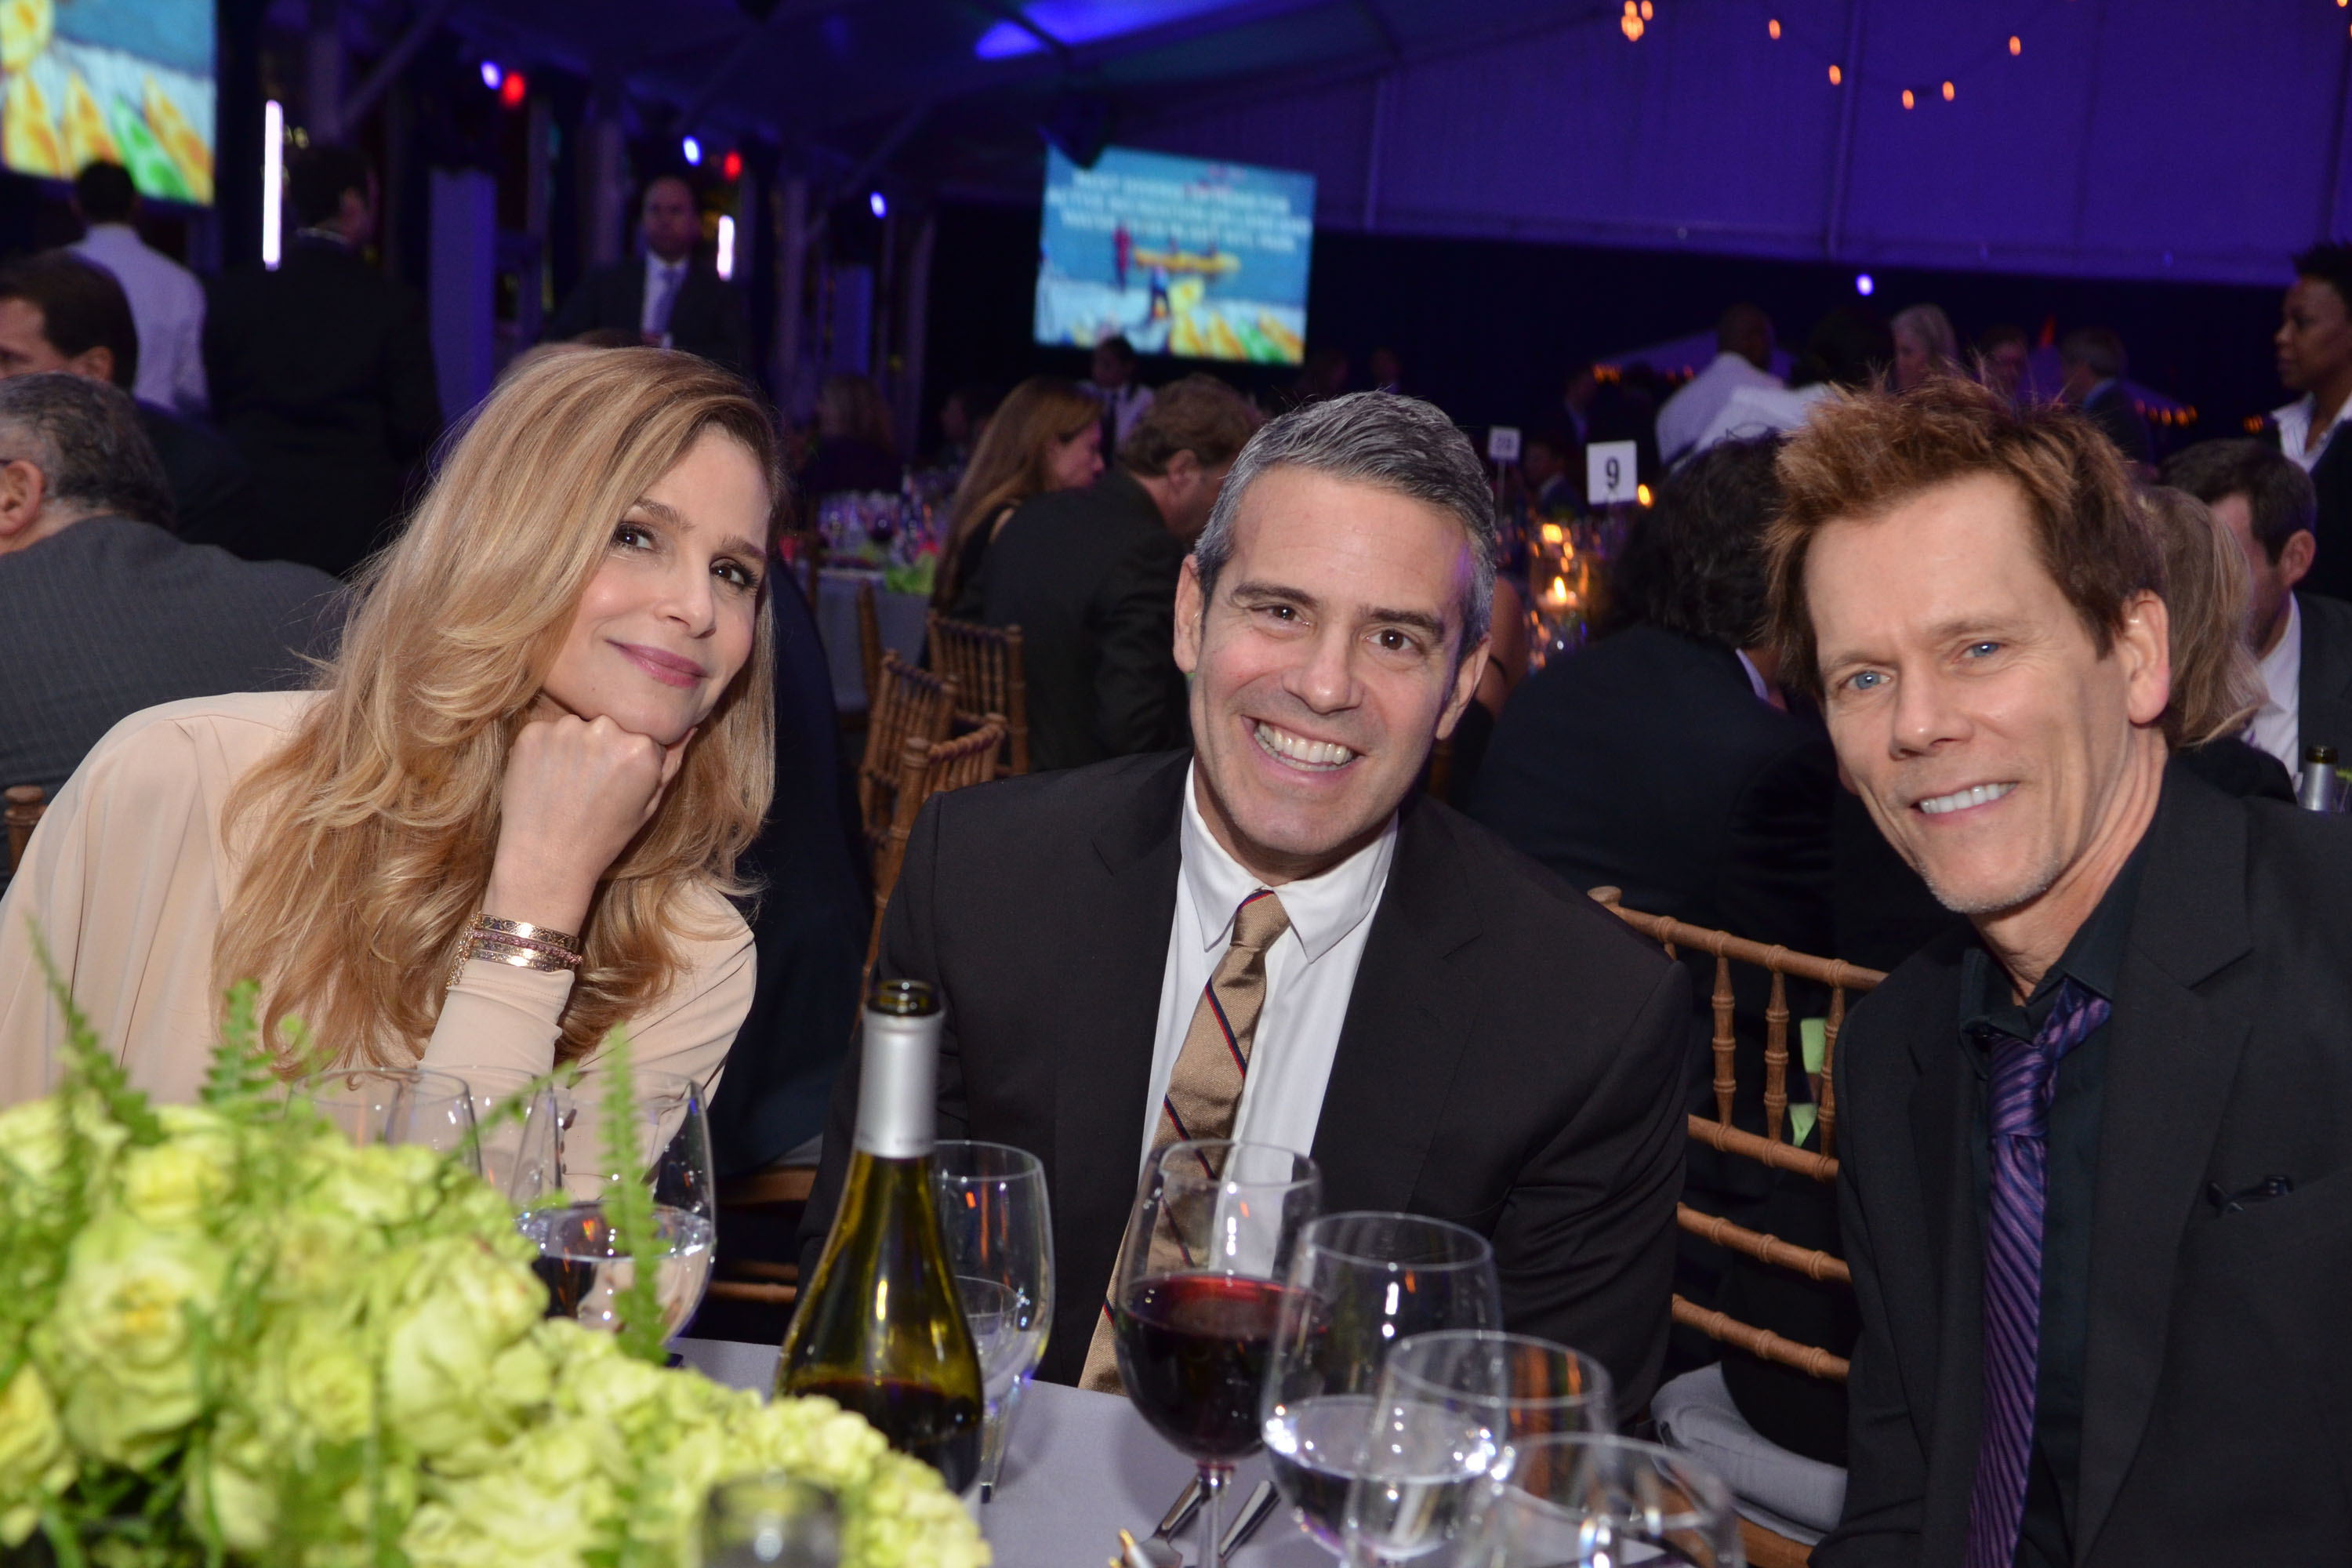 Friends of Hudson River Park Benefit - On The Move